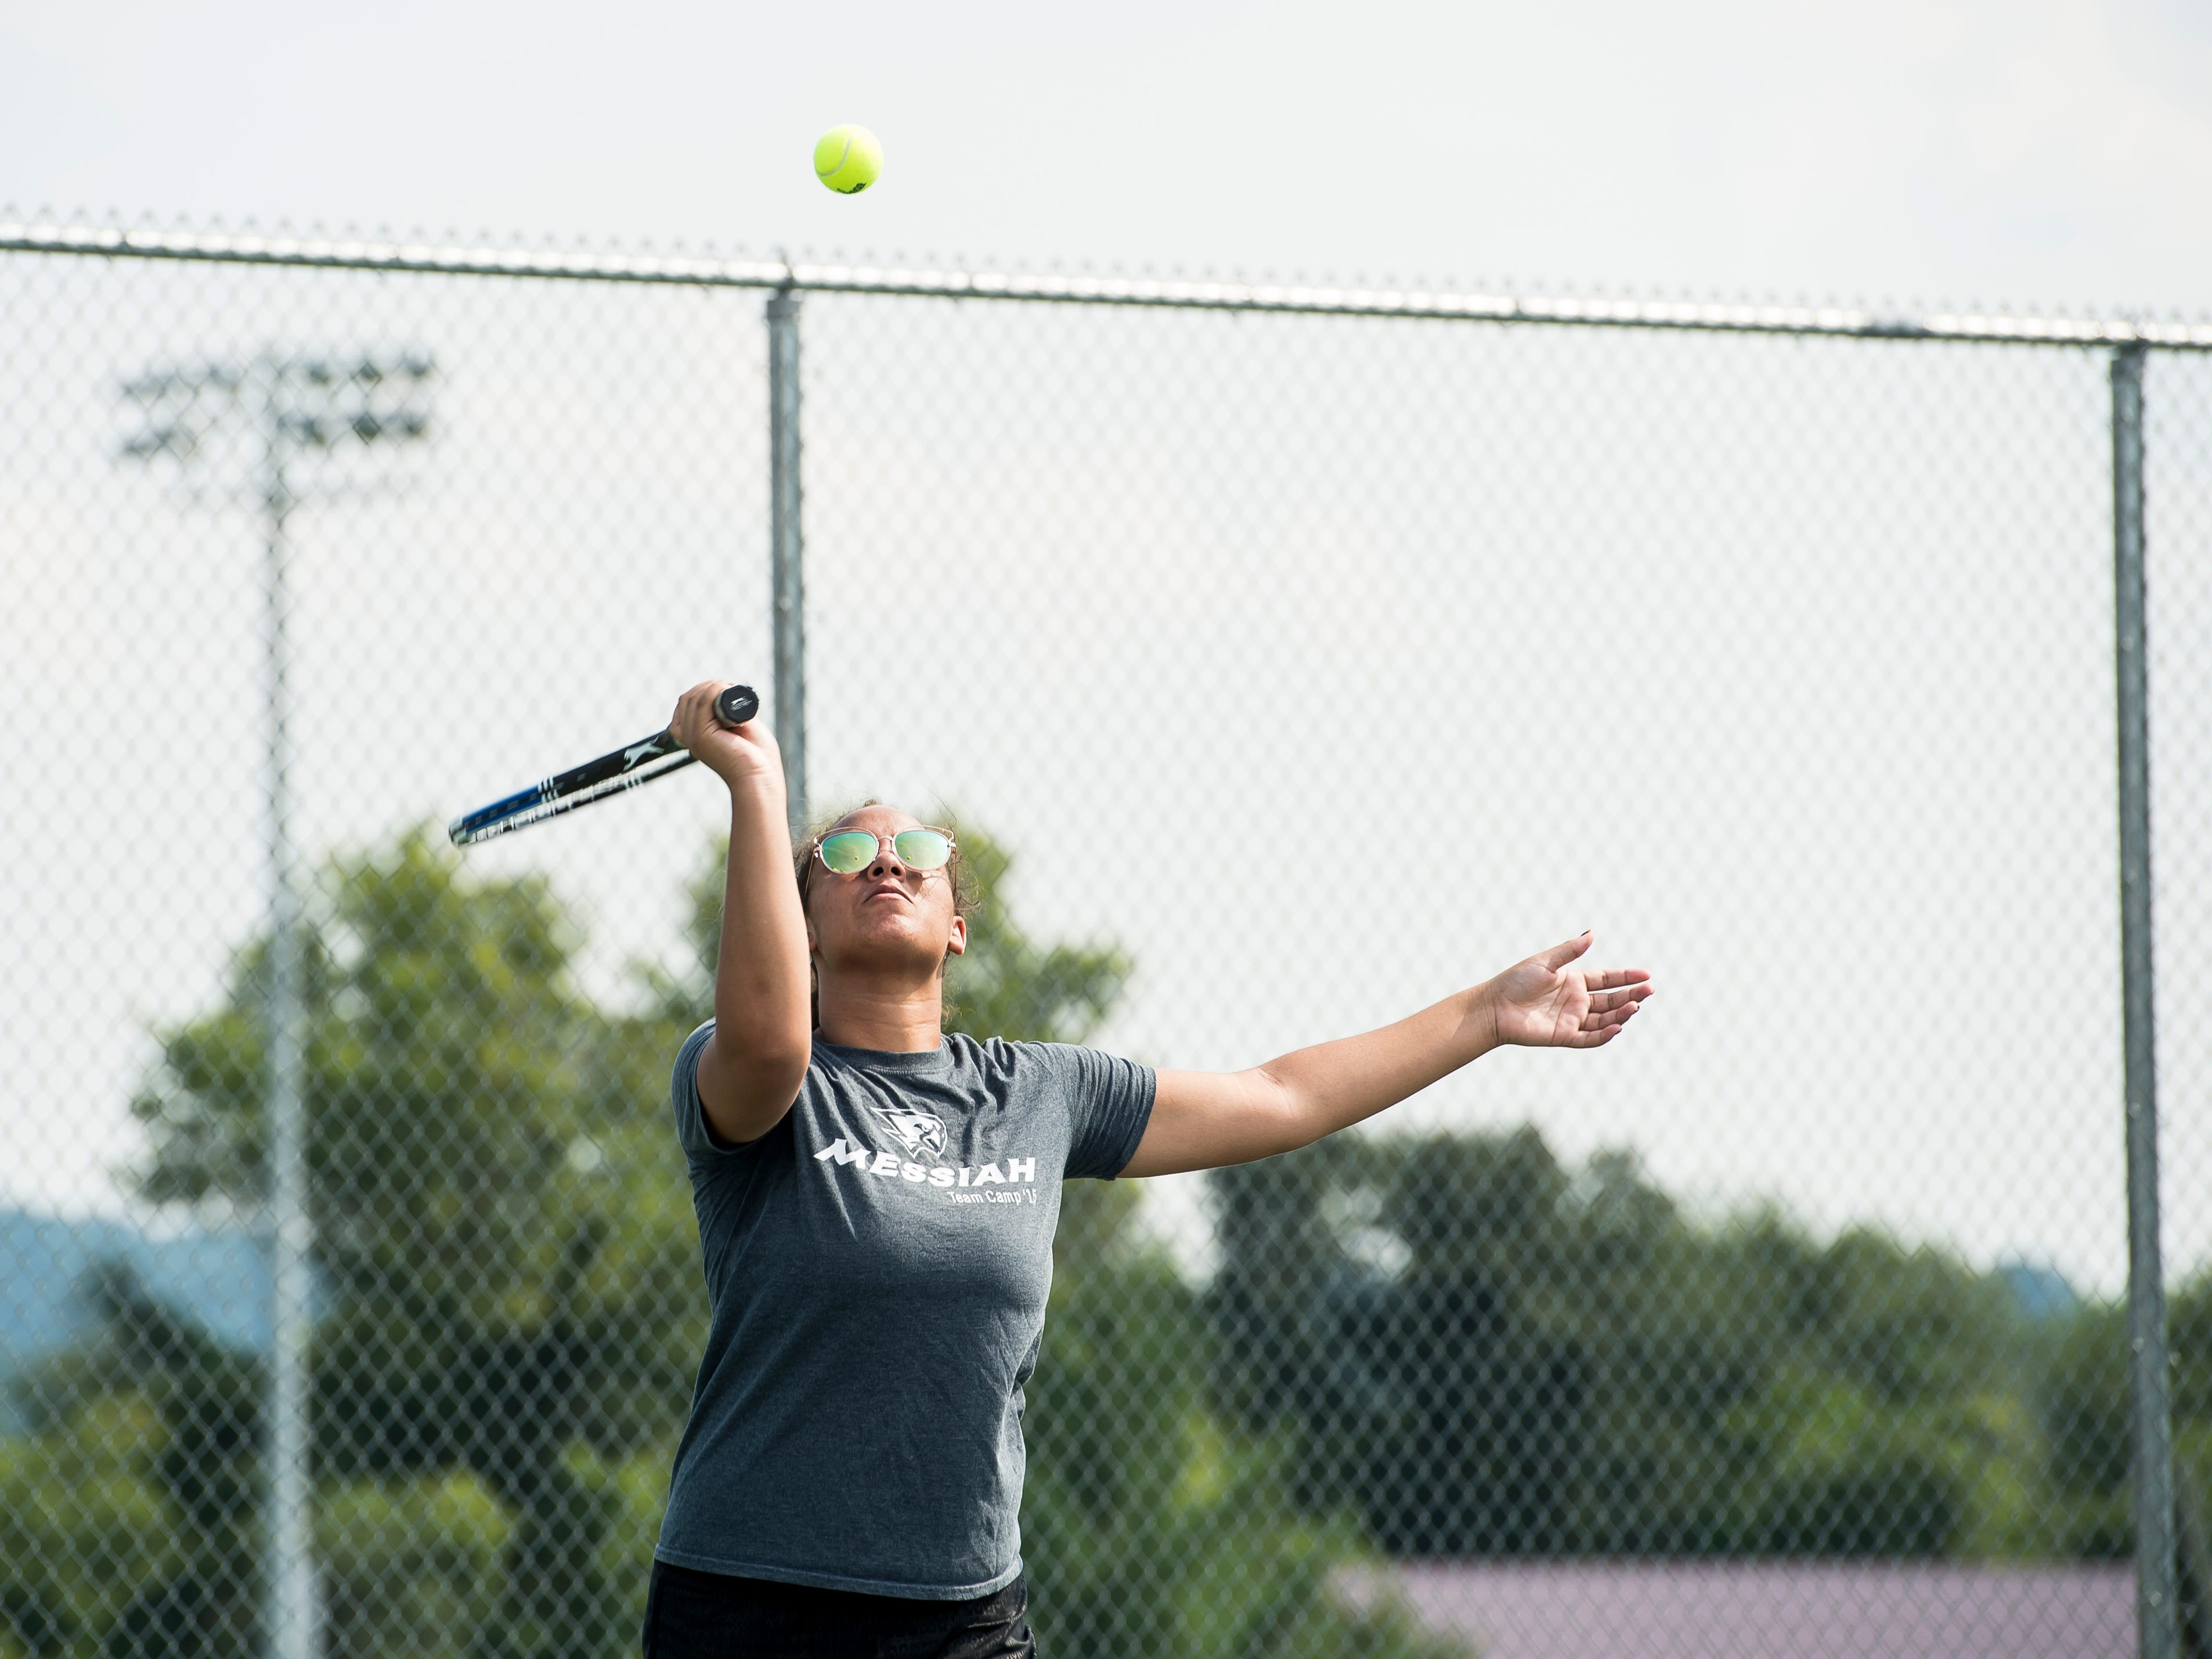 Bermudian Springs' Terisha Selby serves during practice on Thursday, August 16, 2018.